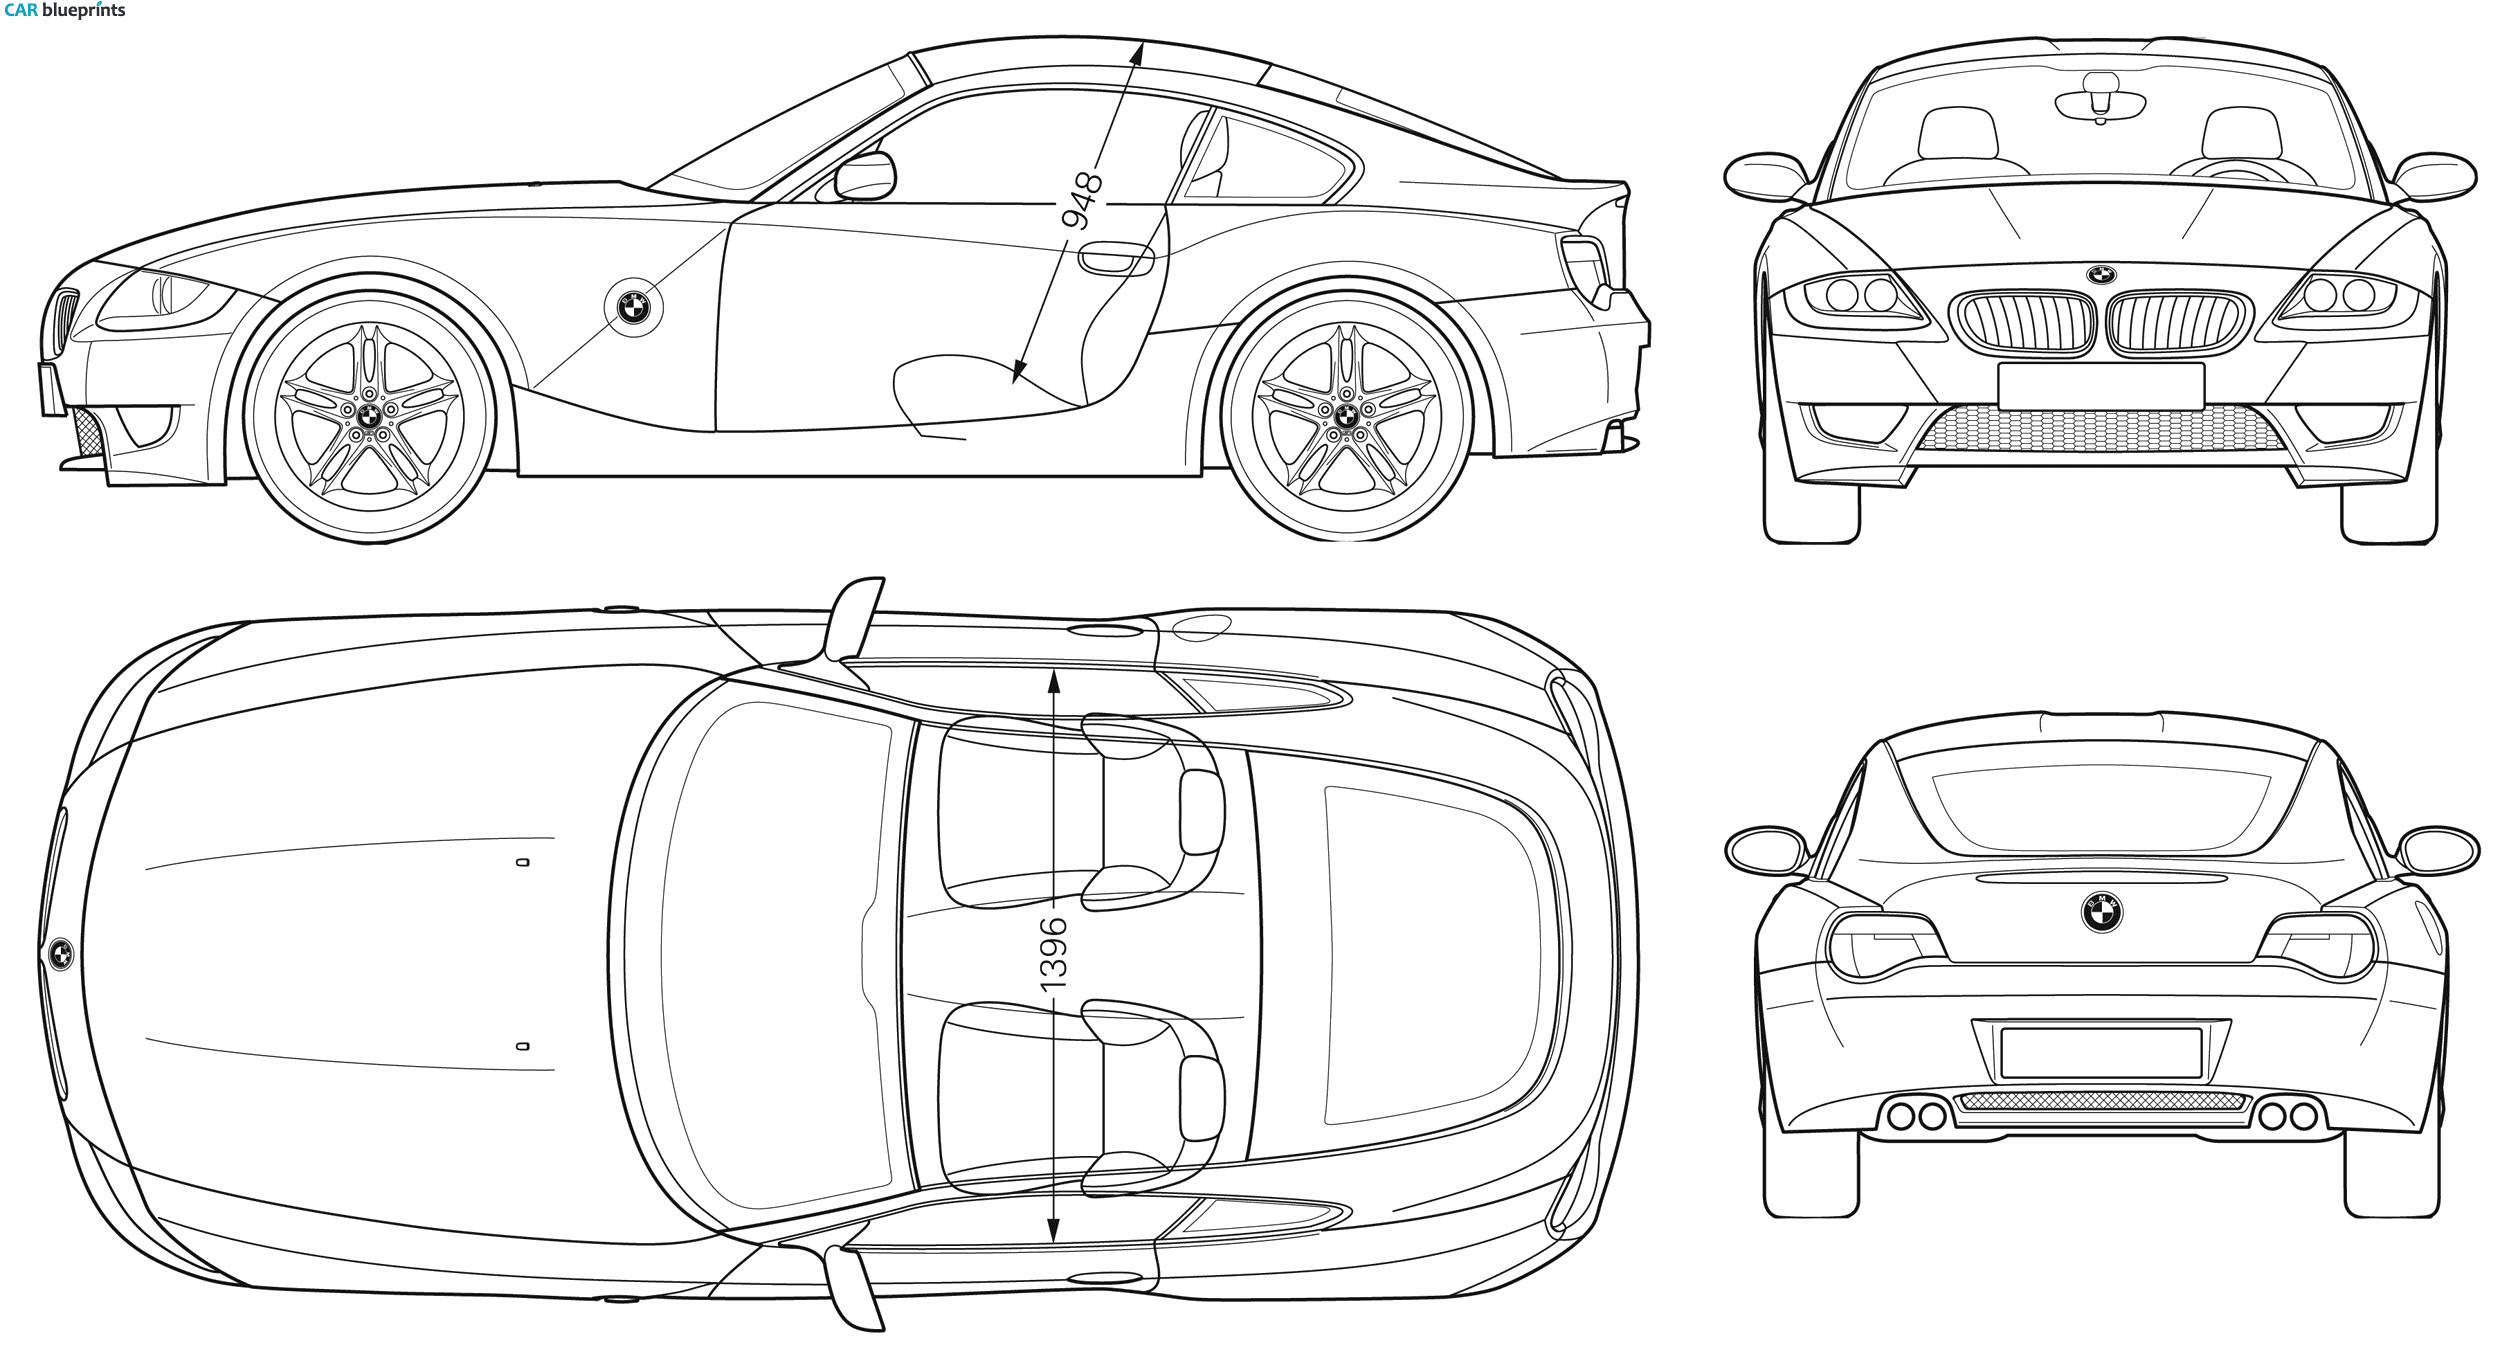 blueprint car - Google 검색 | blueprint | Pinterest | Car drawings ...